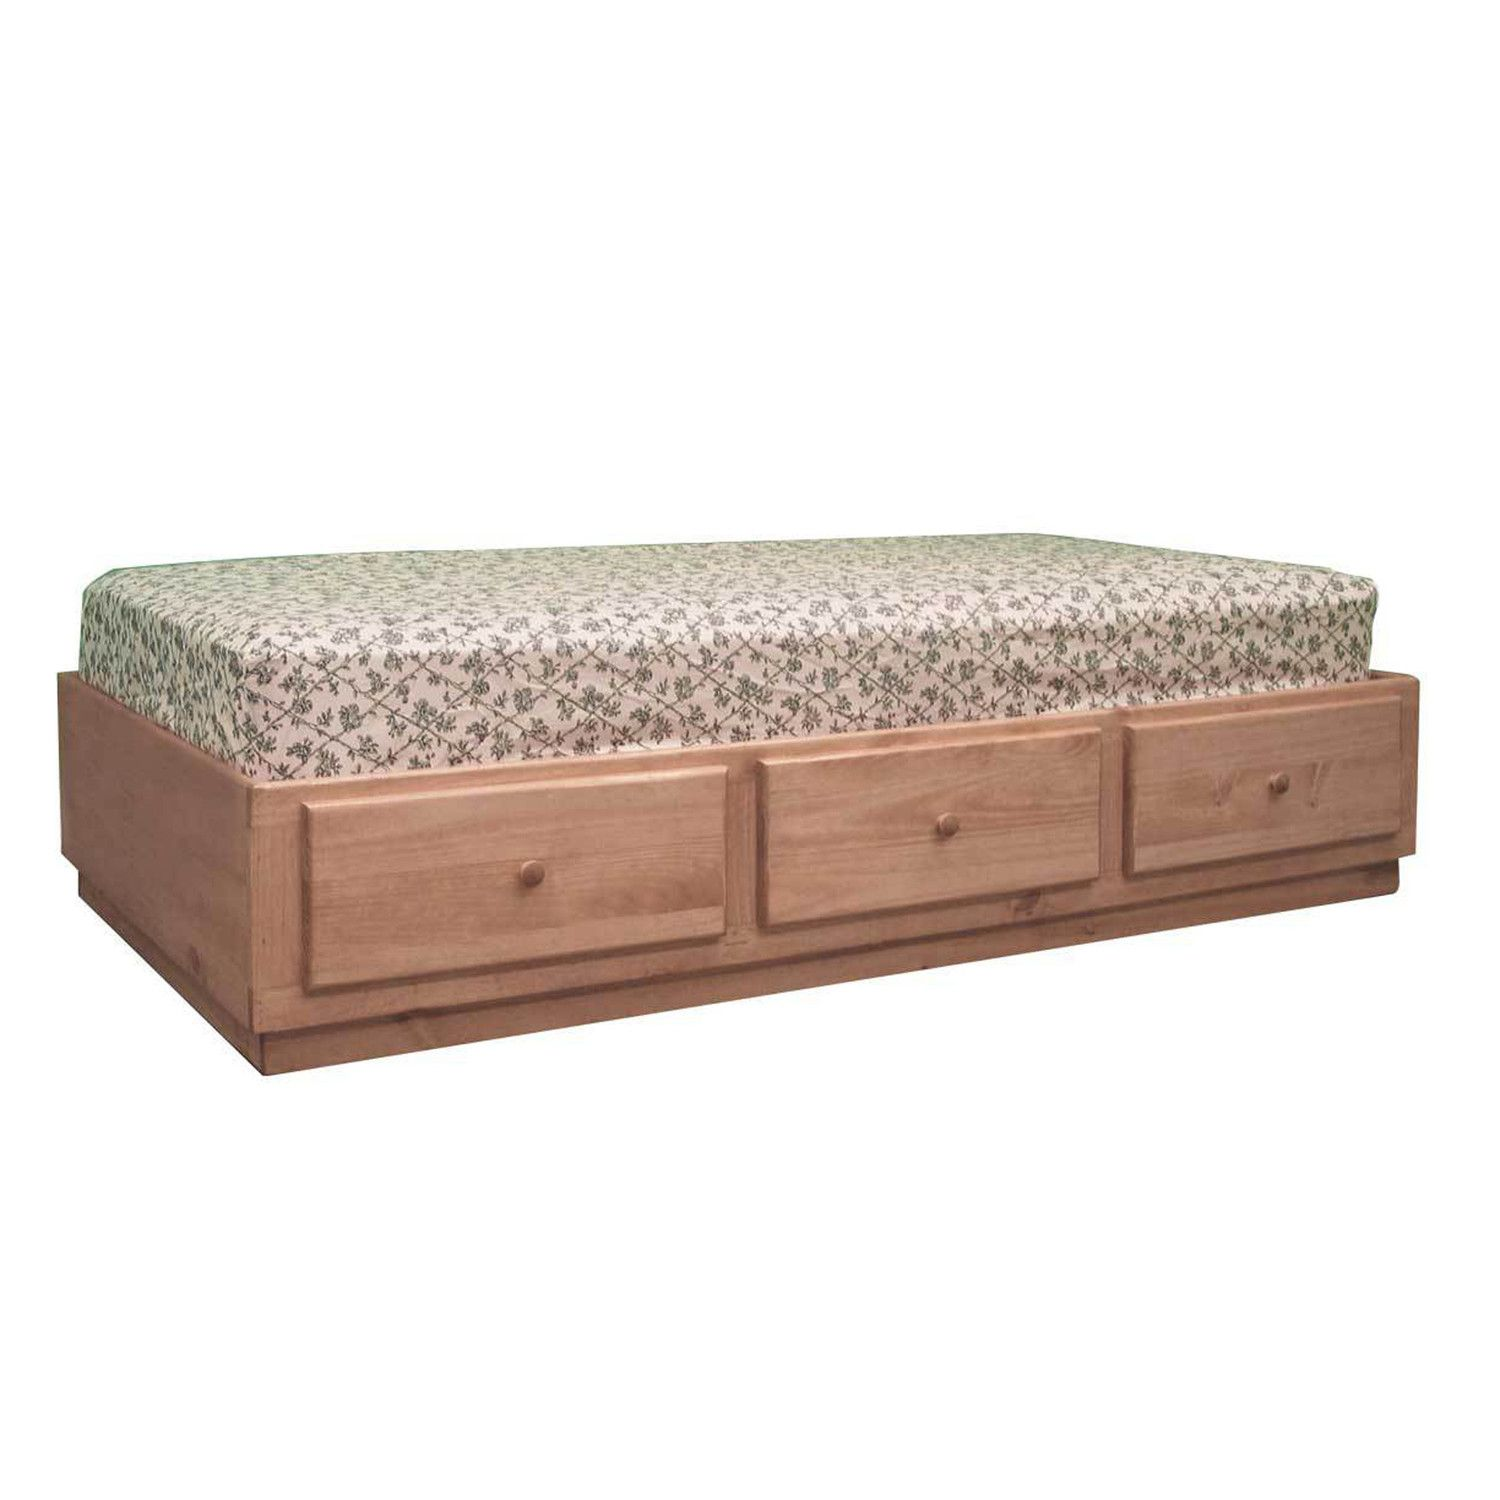 Gloucester Upholstered Standard Bed In 2019 Gothic